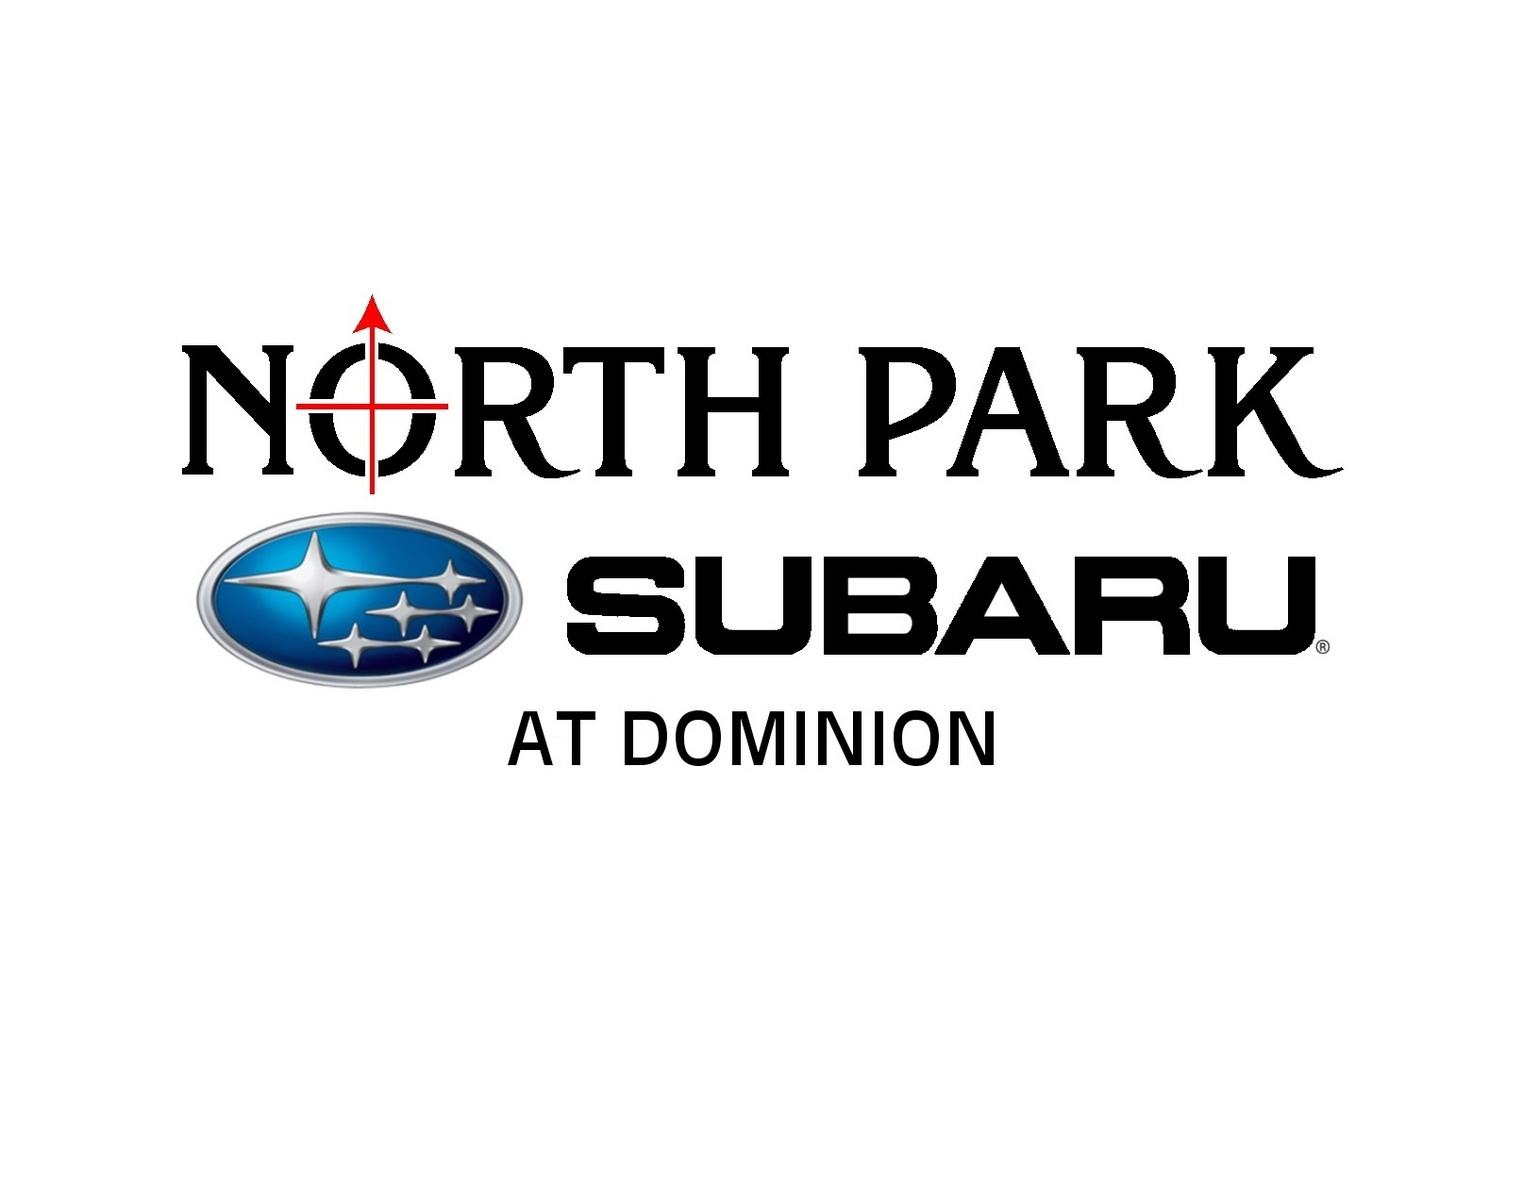 Used Porsche San Antonio >> North Park Subaru Dominion - San Antonio, TX: Read Consumer reviews, Browse Used and New Cars ...